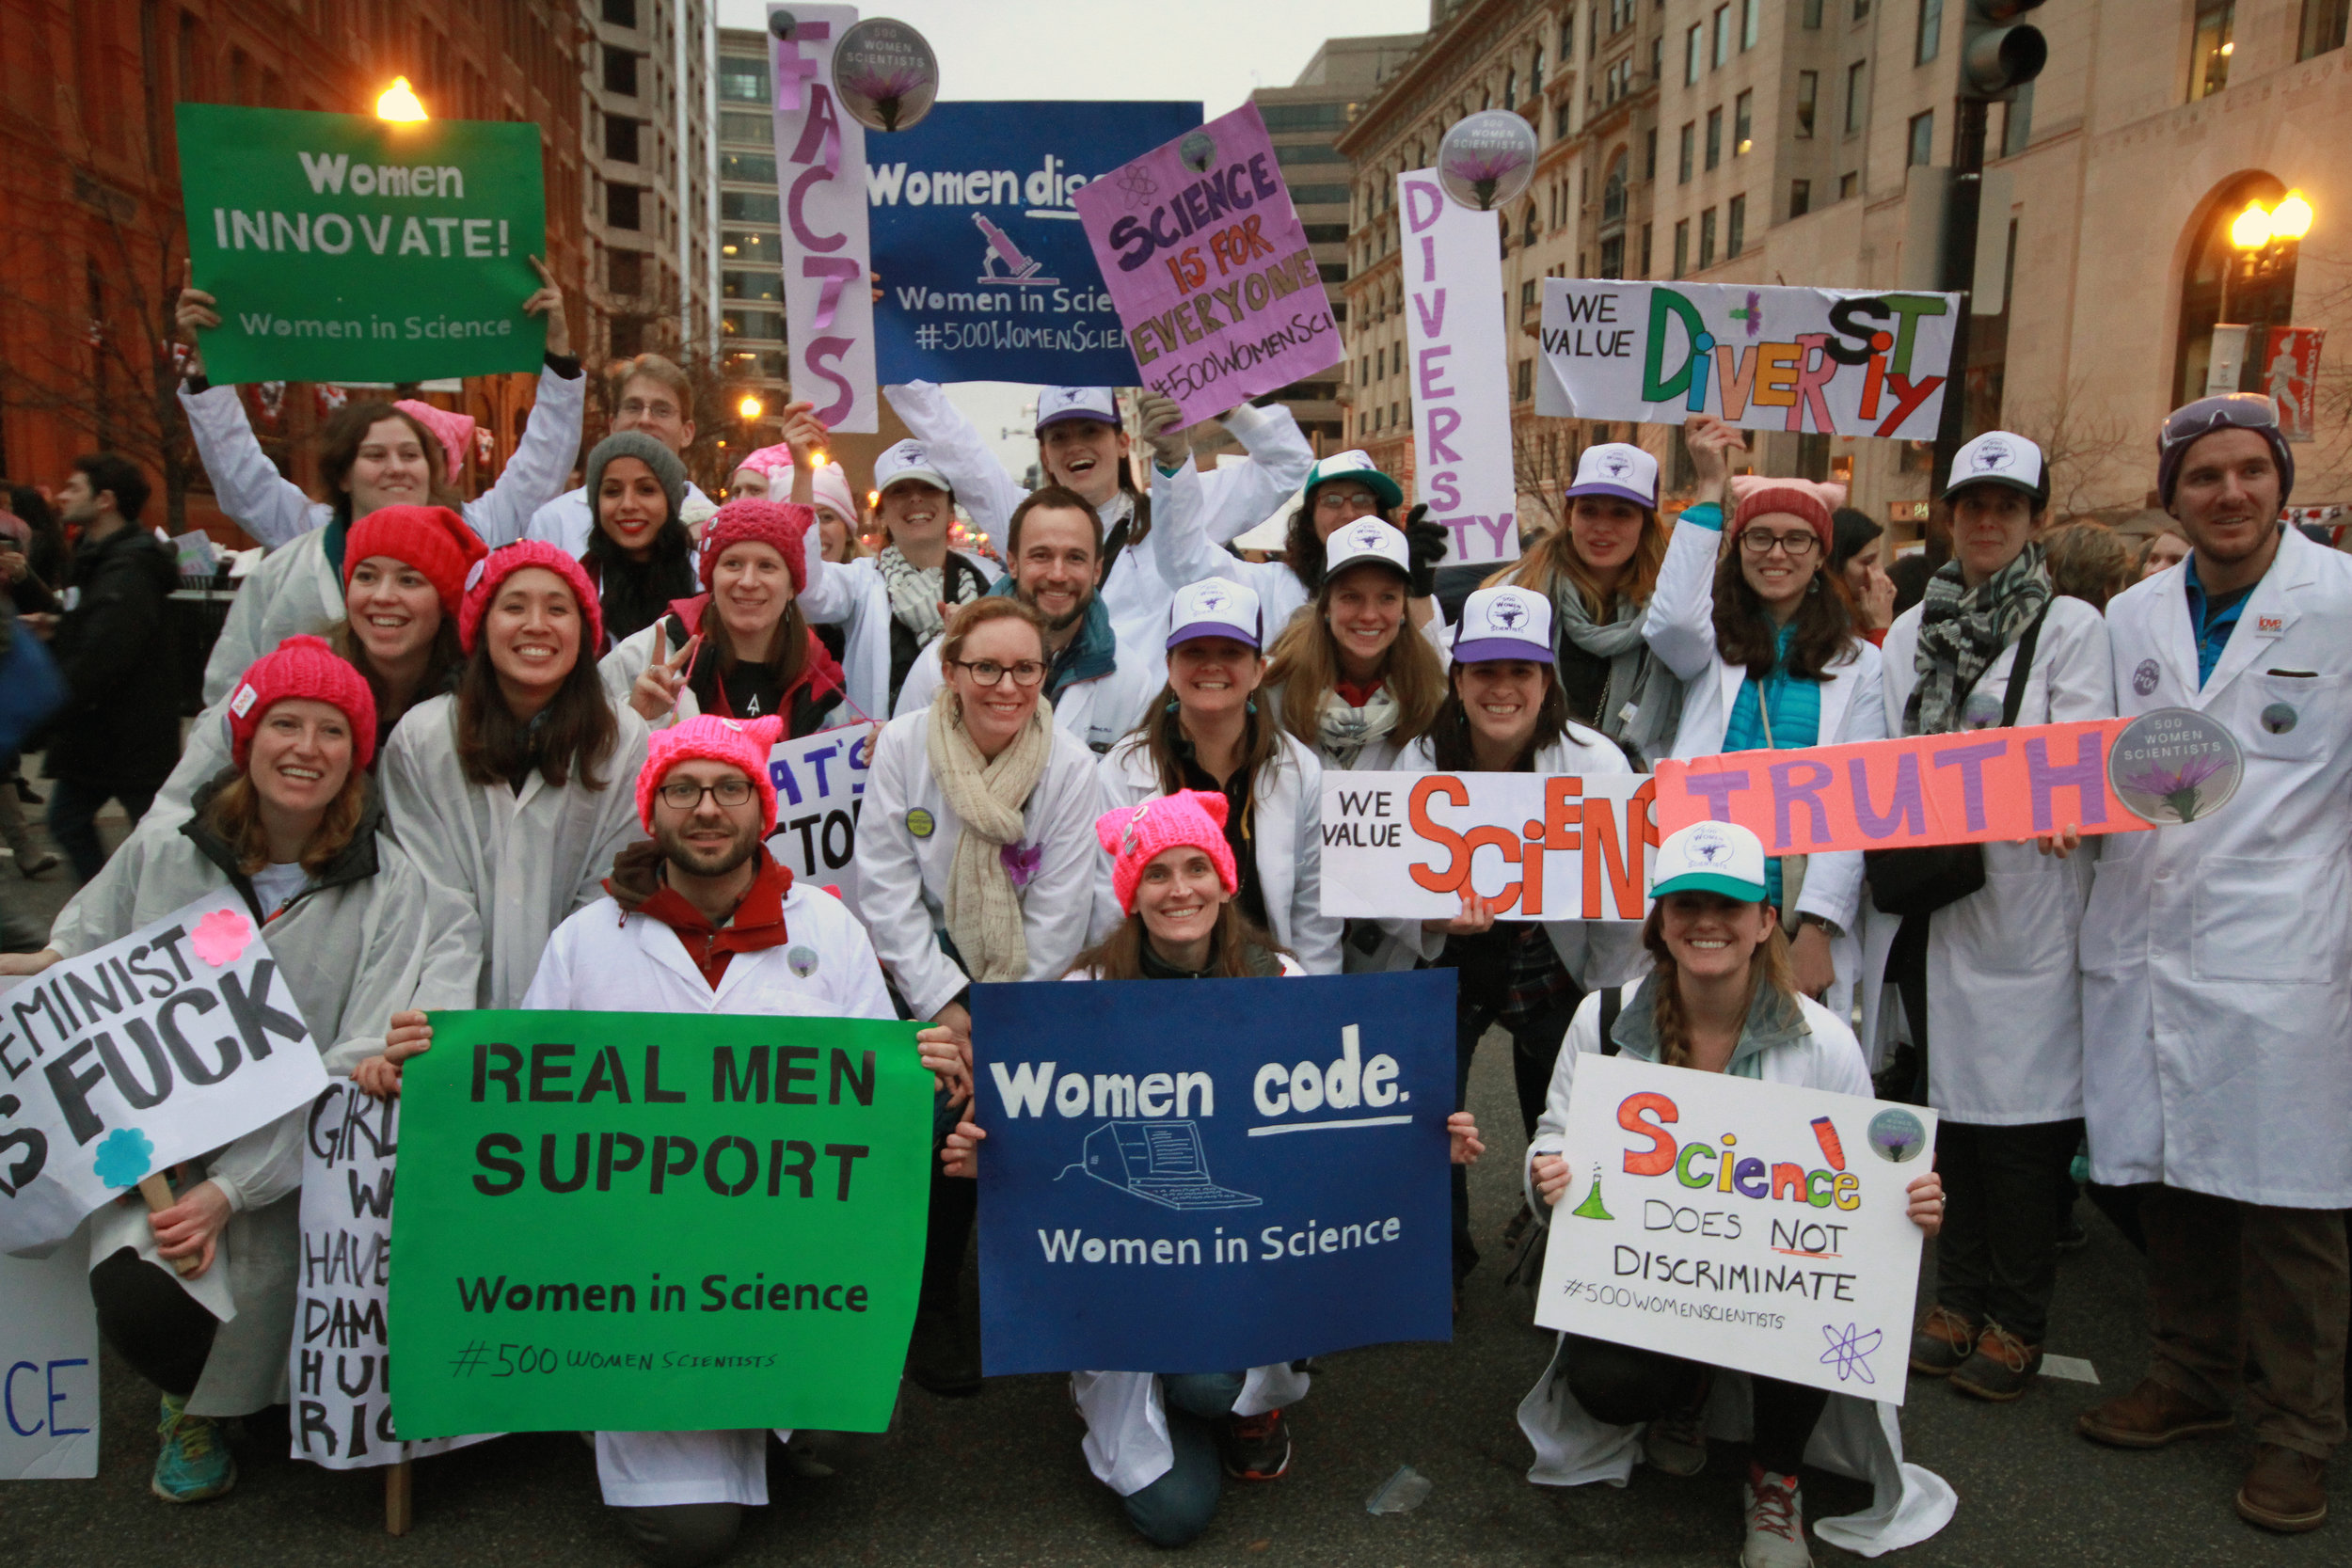 Forbes, Why Were Dozens of People in White Lab Coats at The Women's March in DC? , 22 Jan 2017